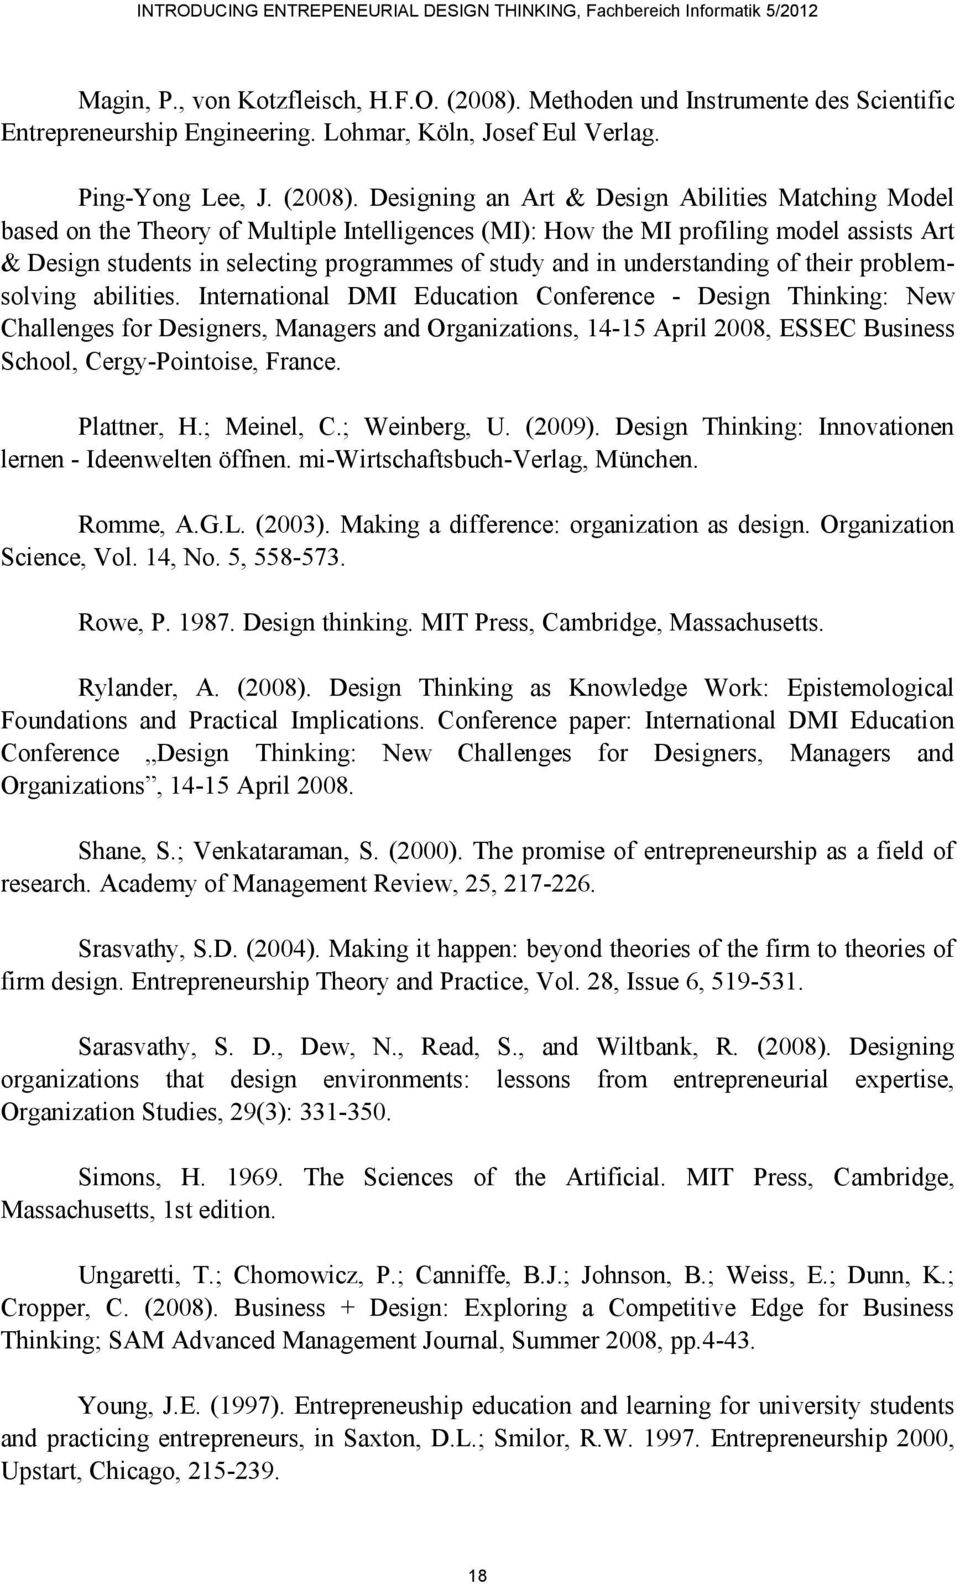 Designing an Art & Design Abilities Matching Model based on the Theory of Multiple Intelligences (MI): How the MI profiling model assists Art & Design students in selecting programmes of study and in